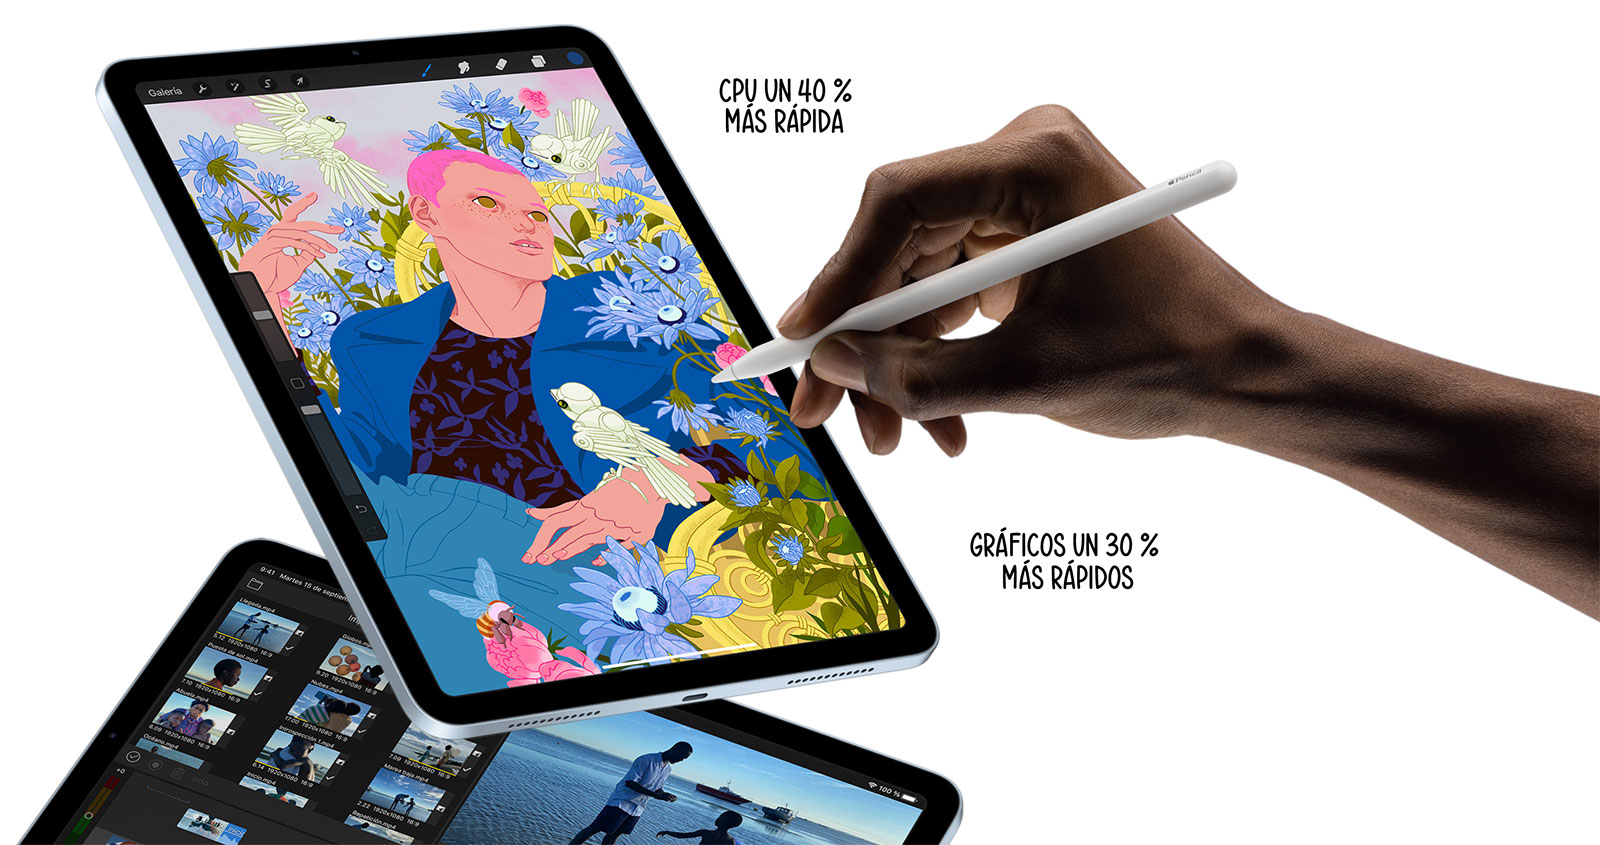 Apple Pencil en el renovado <stro />iPad</strong>® Air 2020″ width=»1600″ height=»845″ class=»aligncenter size-full wp-image-61803″ srcset=»https://ipaderos.com/wp-content/uploads/2020/09/airosfousj.jpg 1600w, <a target=